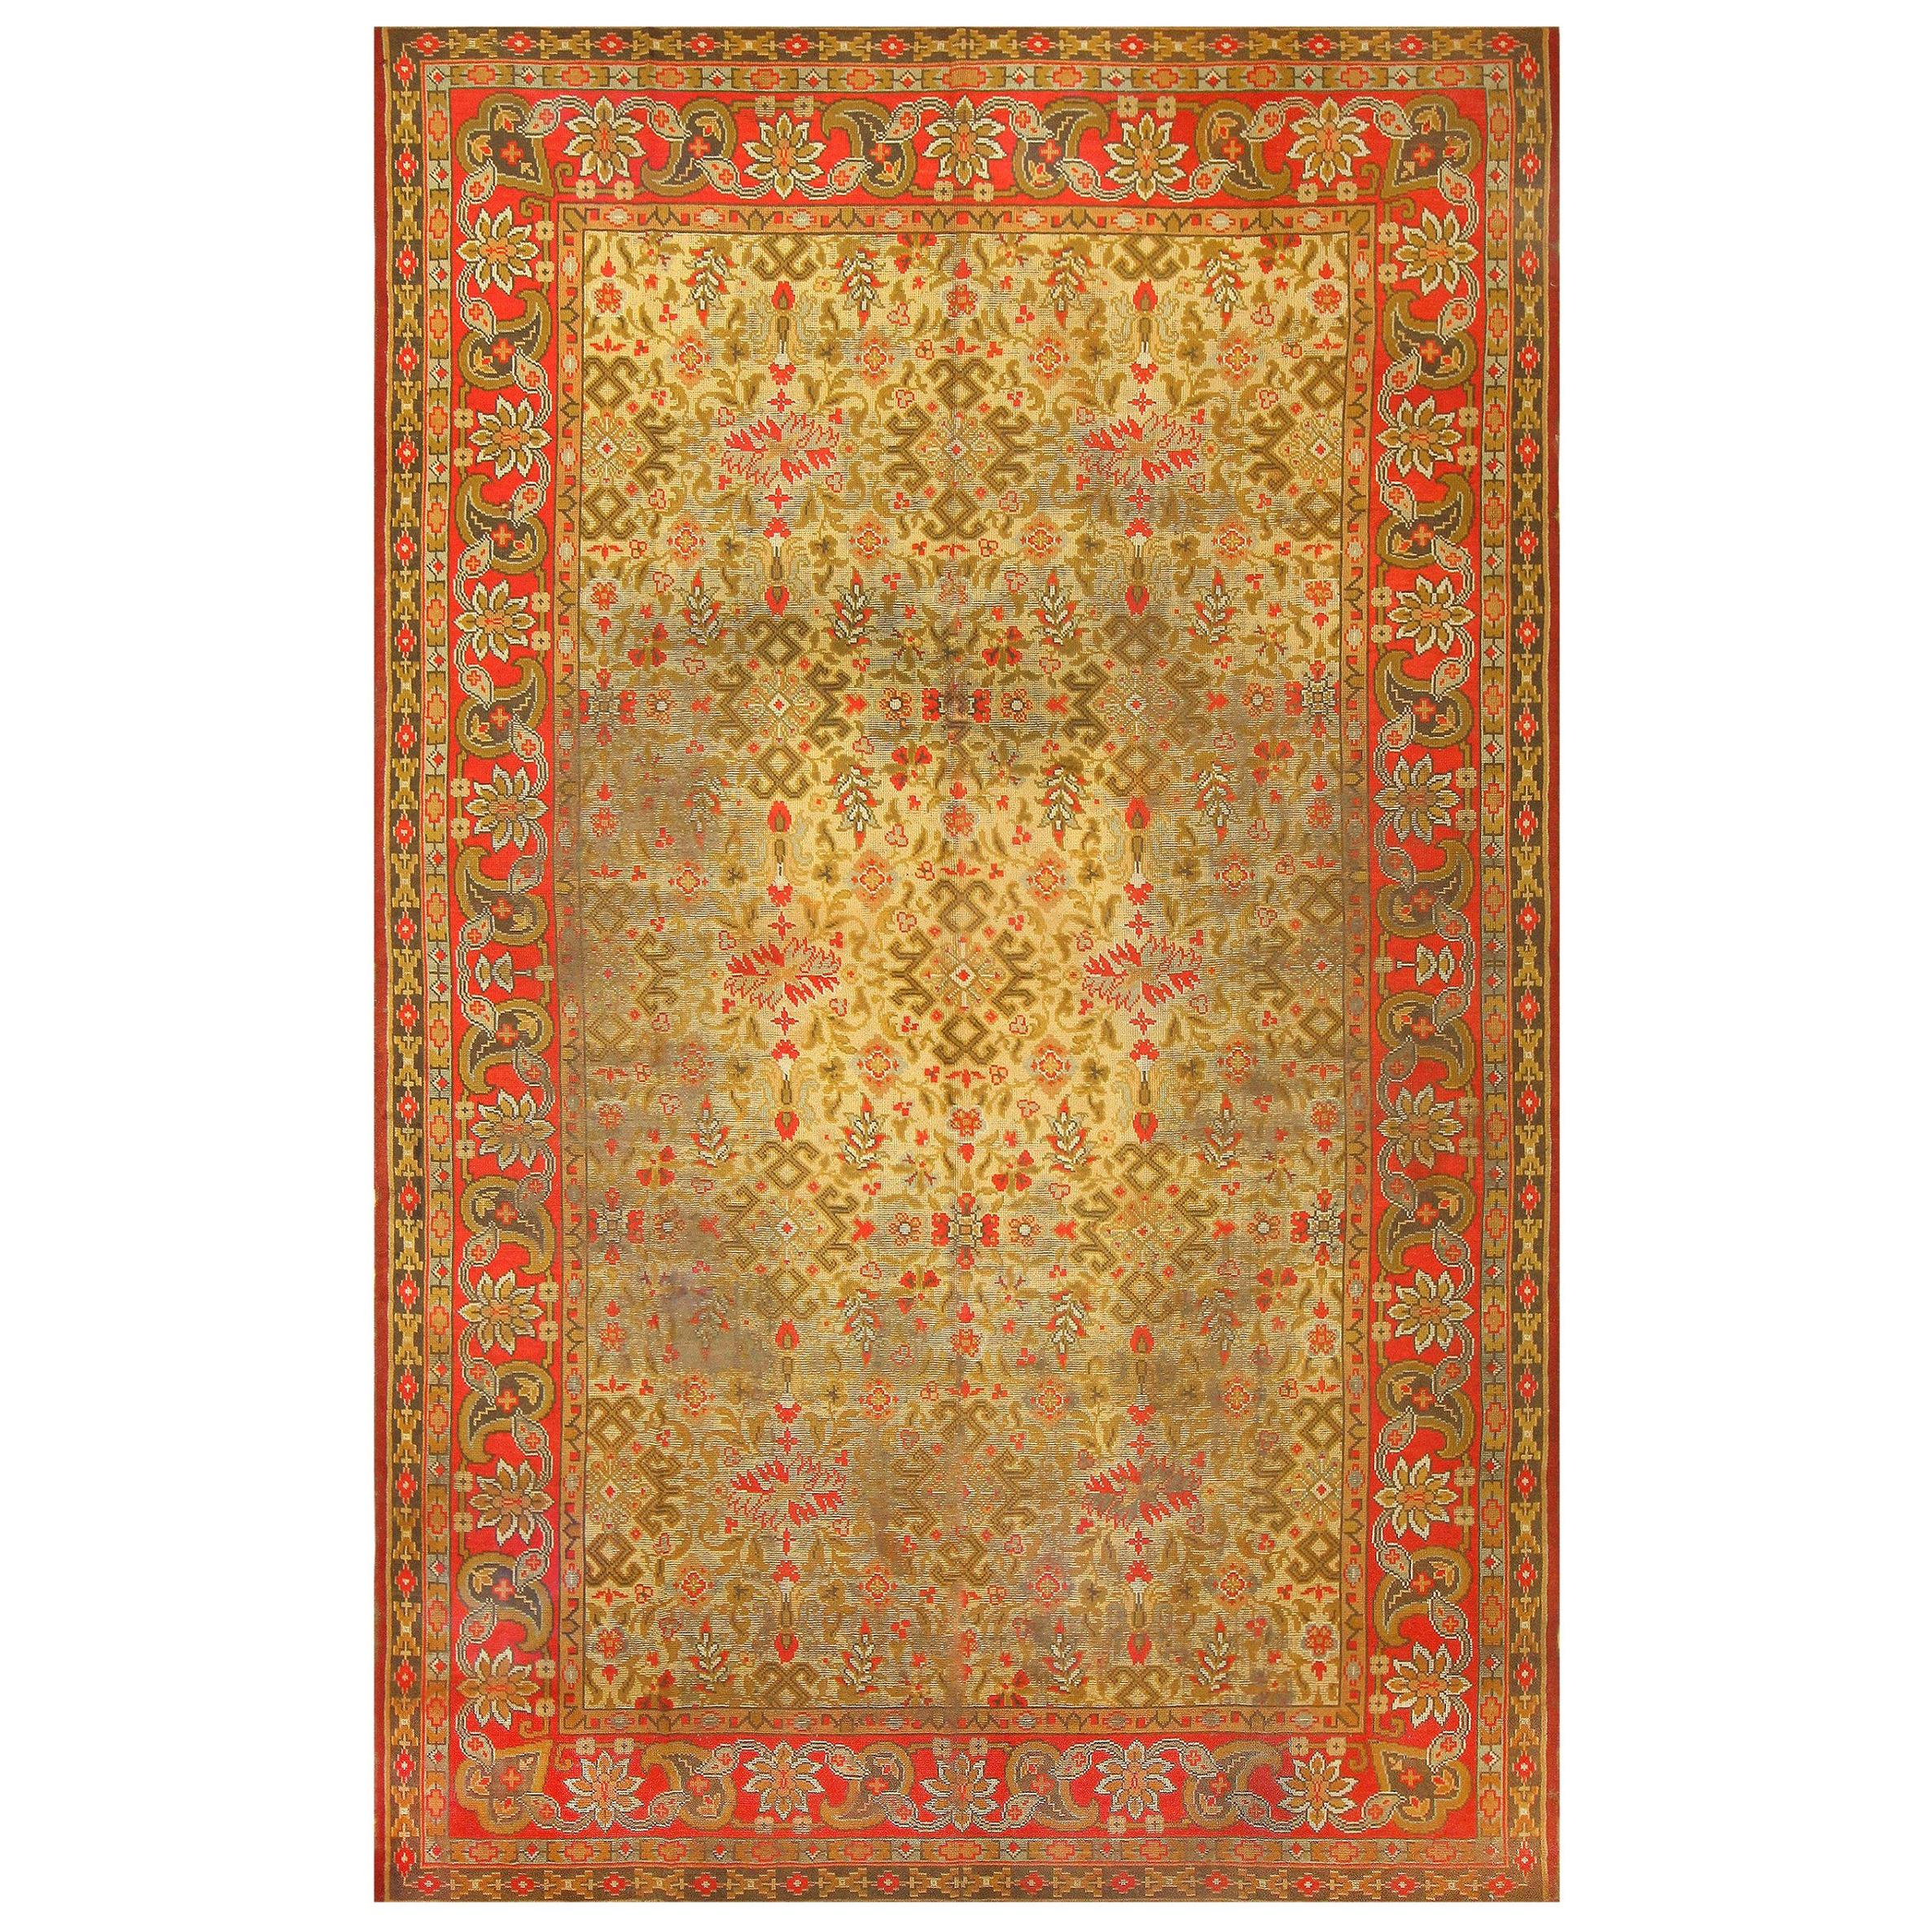 Large Shabby Chic Antique Irish Donegal Carpet. Size: 11 ft 6 in x 18 ft 3 in